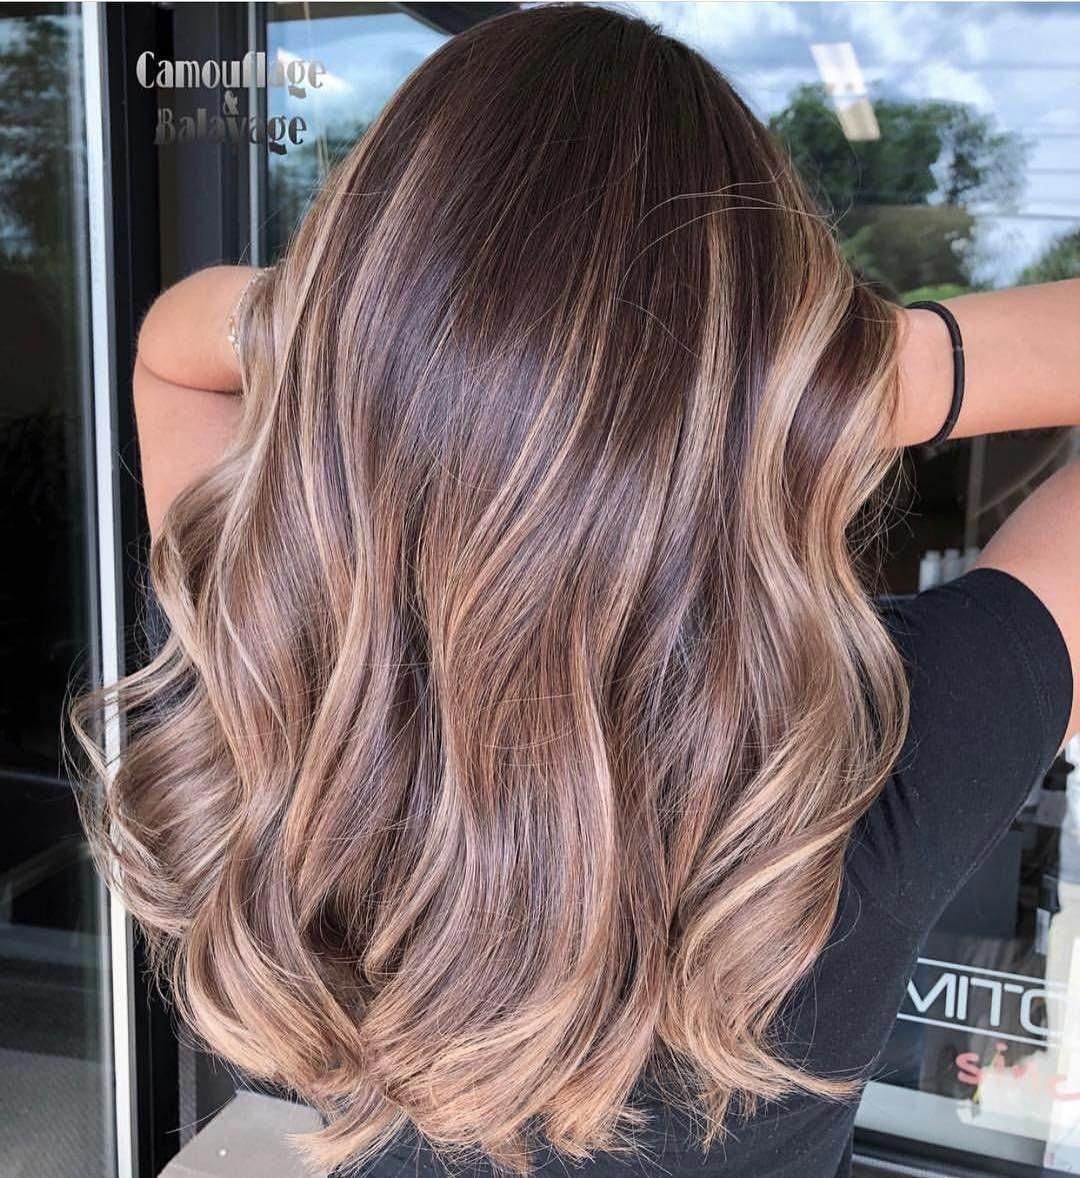 9 Fall Hair Color Trends For Brunettes That You Need To Try Asap Fall Hair Color For Brunettes Fall Hair Color Trends Brunette Hair Color